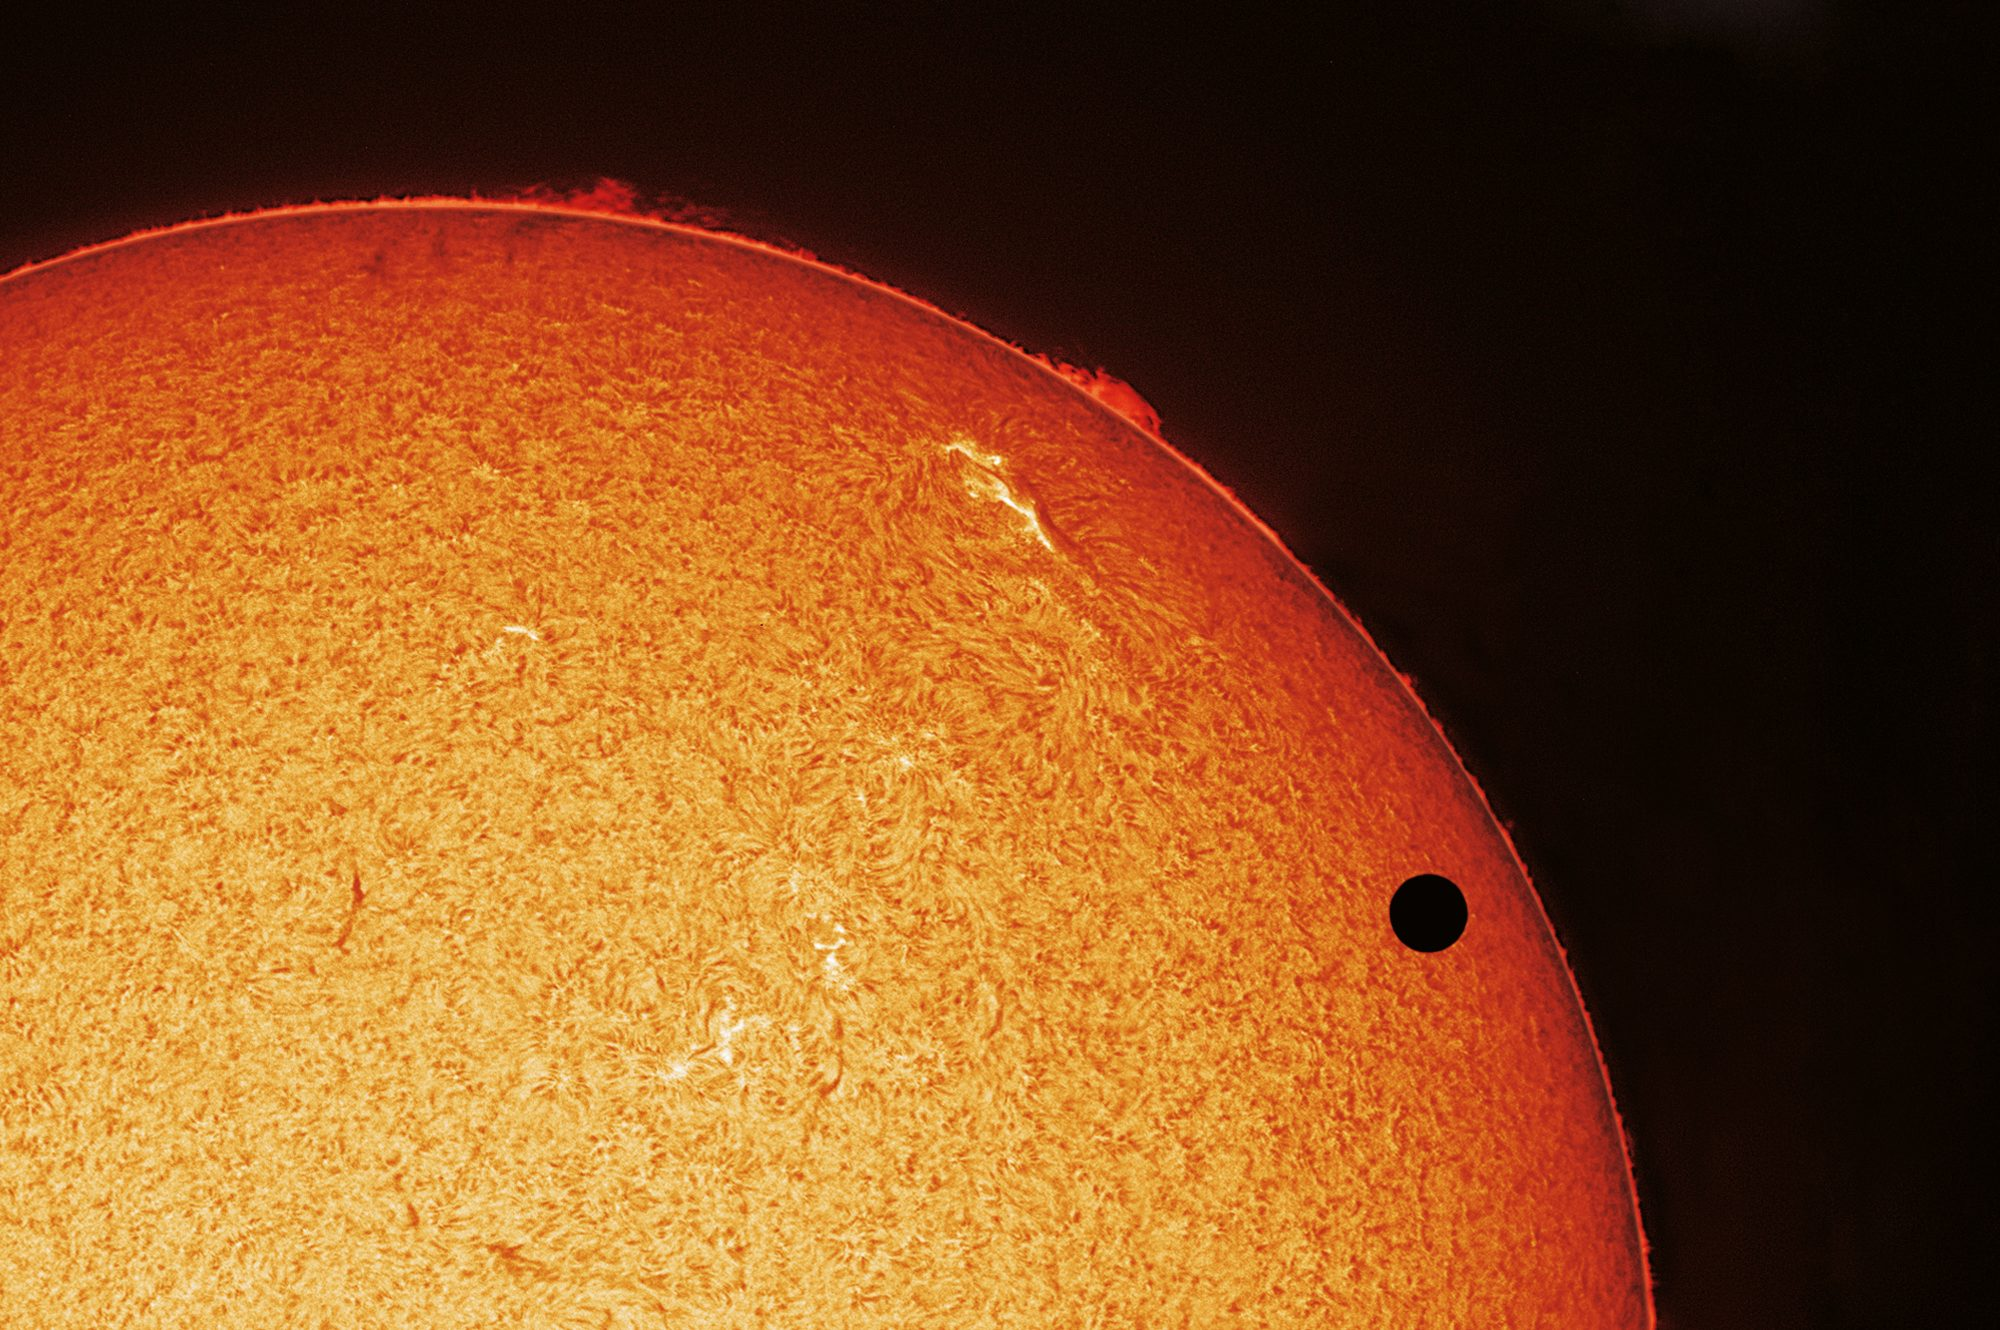 Fire-Gazing: When Venus Transits the Sun 2004 and 2012